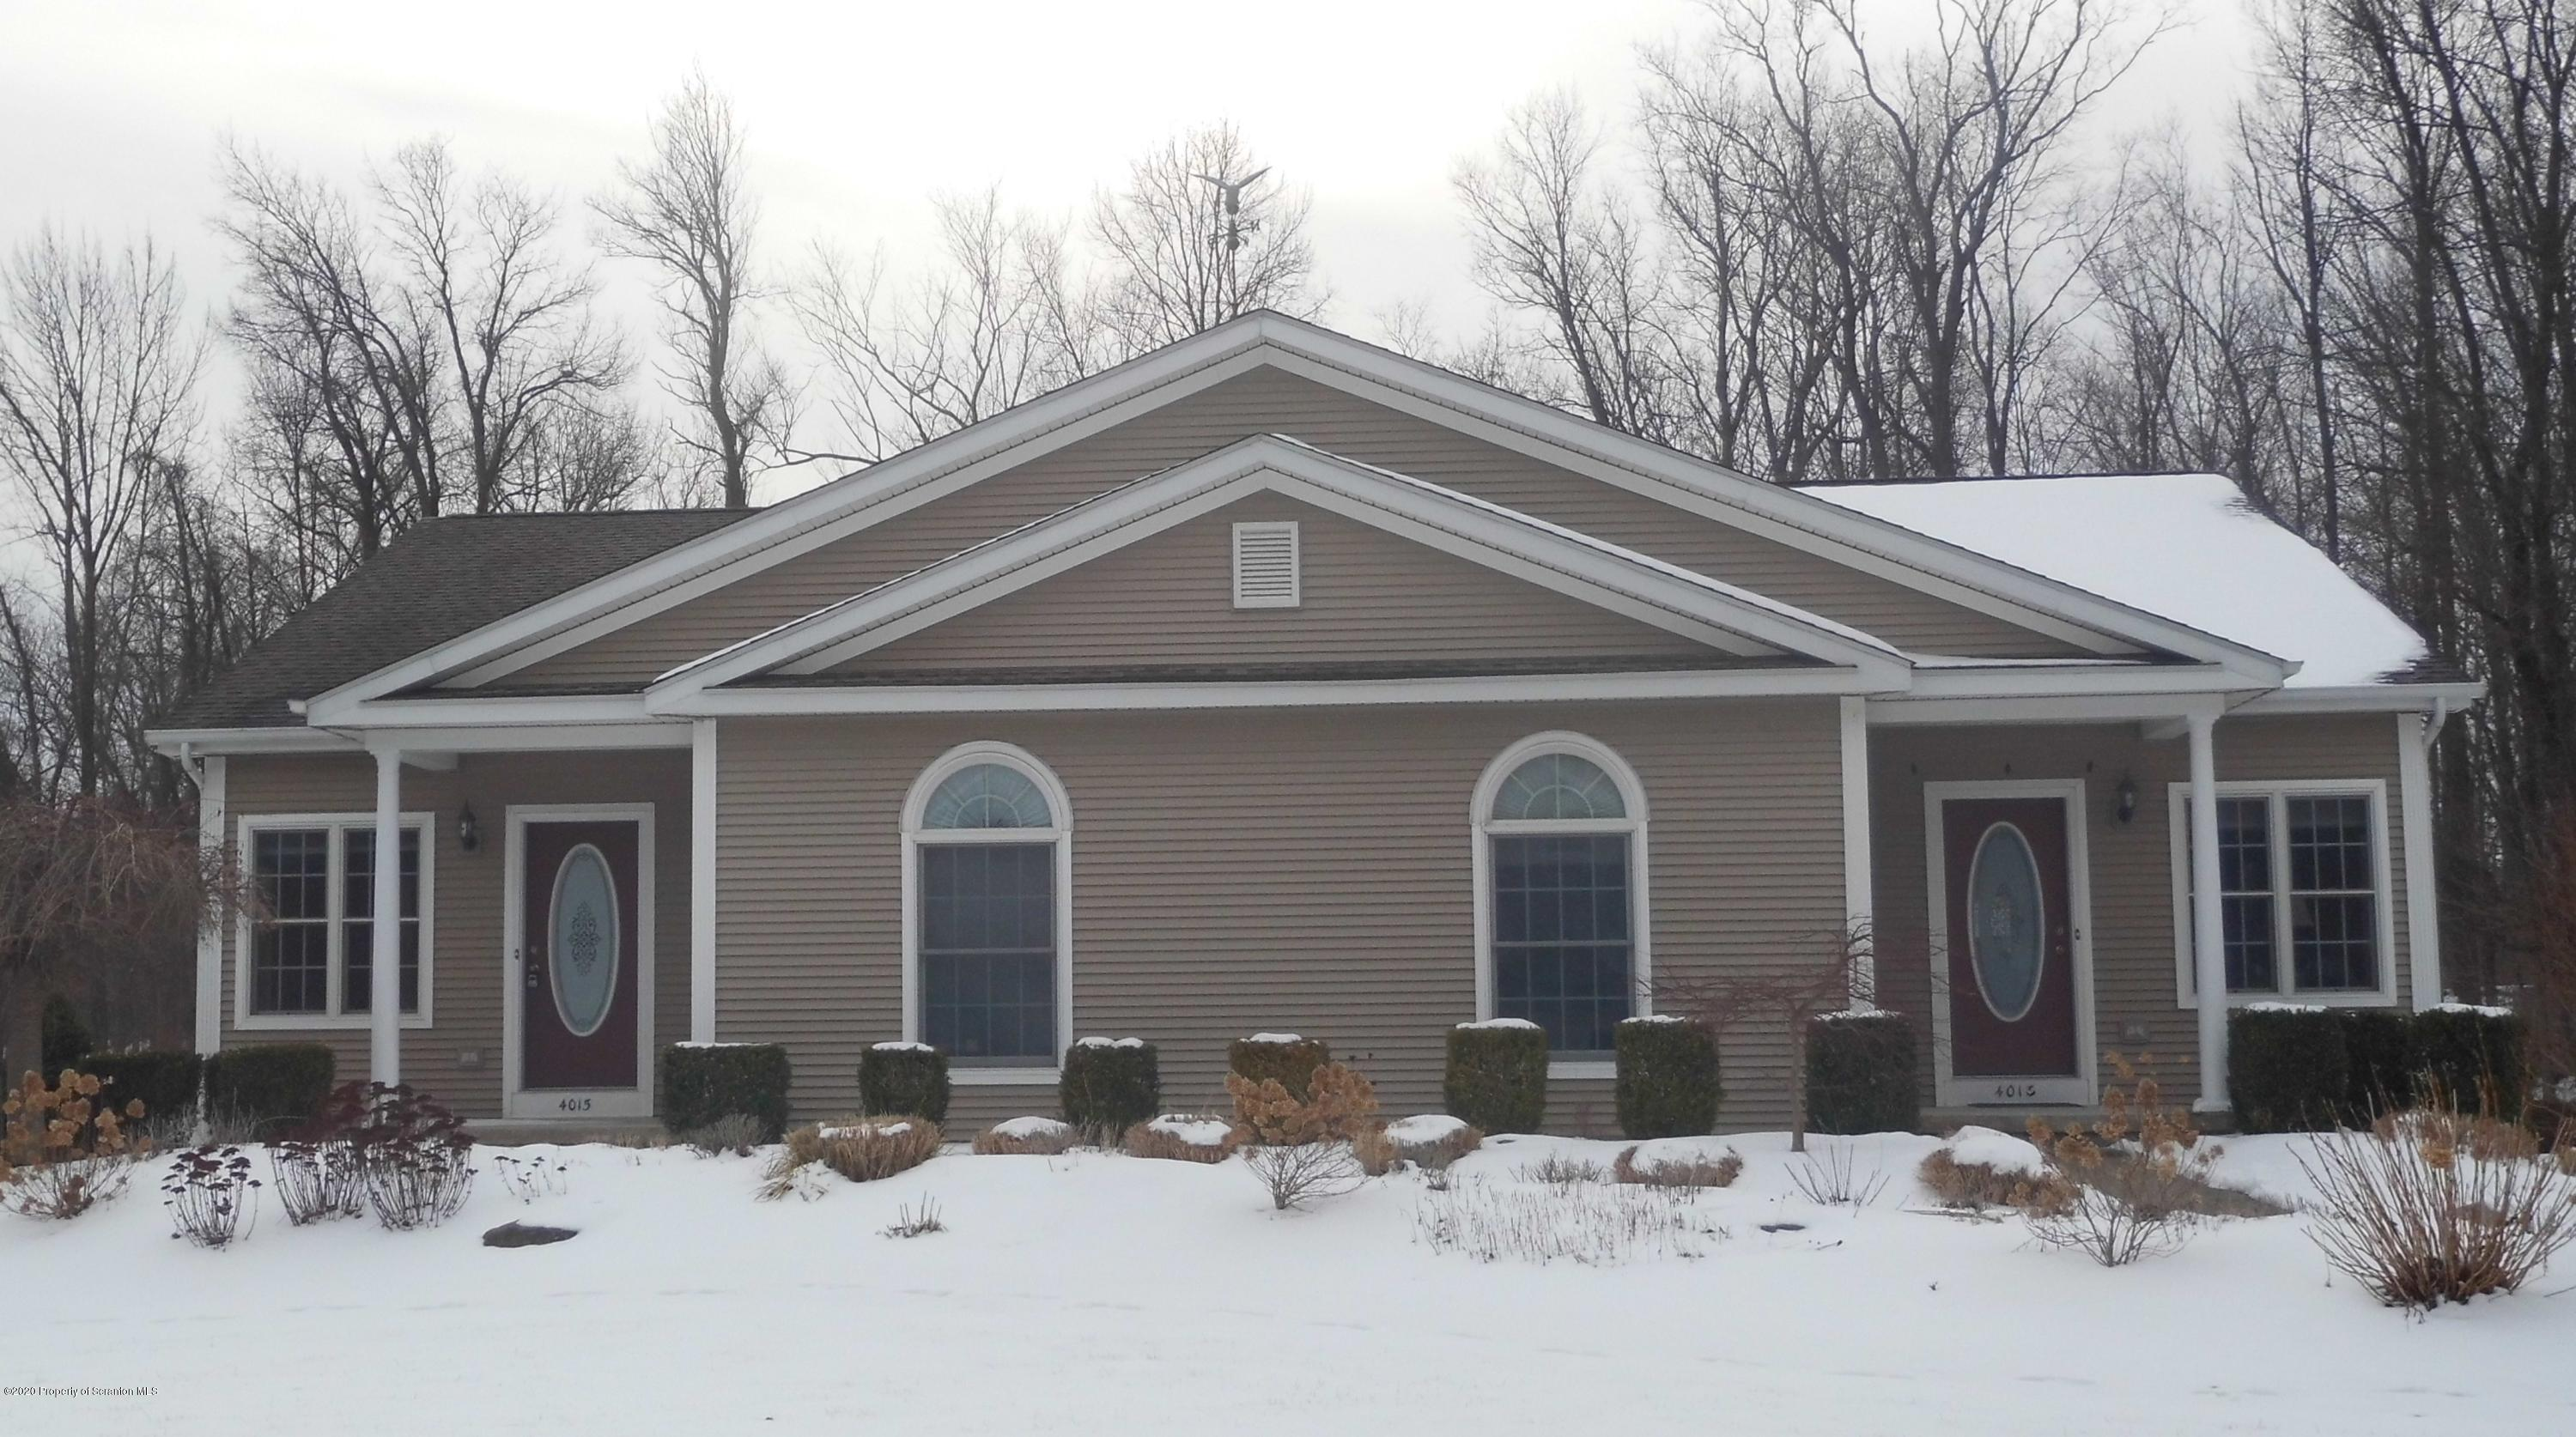 4015 Pondview Drive, Clarks Summit, Pennsylvania 18411, 3 Bedrooms Bedrooms, 6 Rooms Rooms,3 BathroomsBathrooms,Rental,For Lease,Pondview,20-335